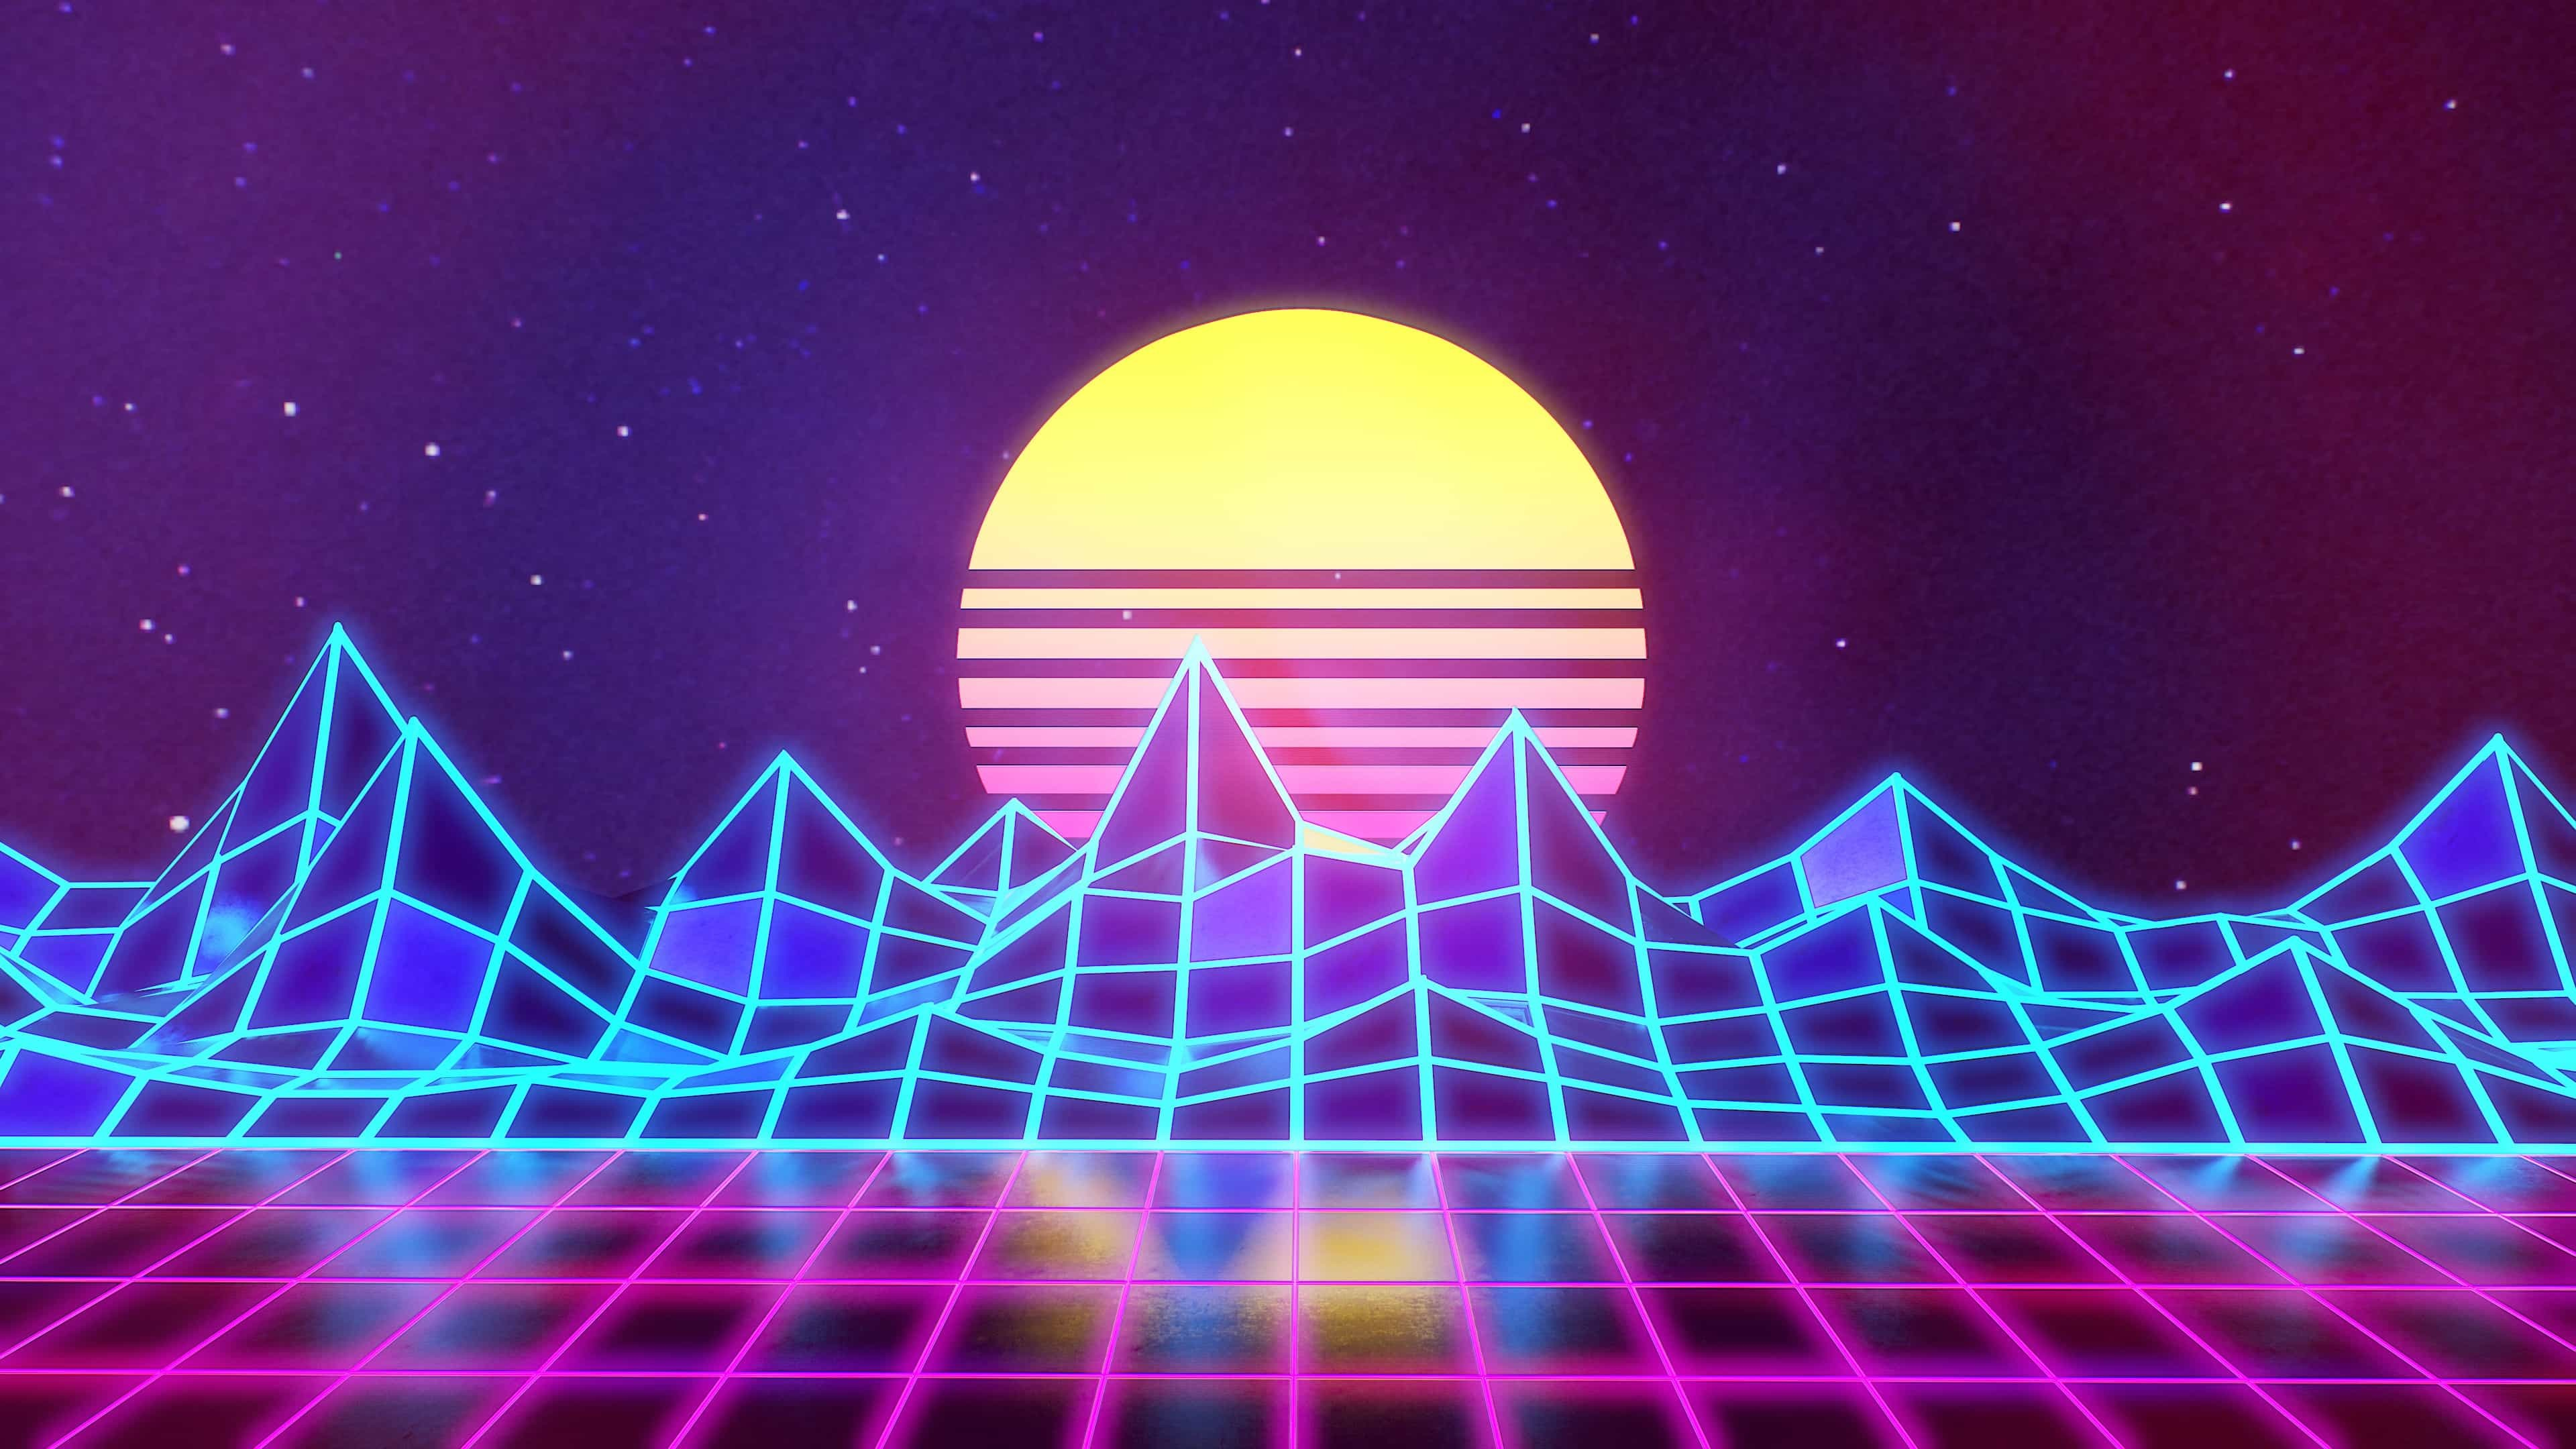 77 Neon 80S Wallpapers on WallpaperPlay 3840x2160